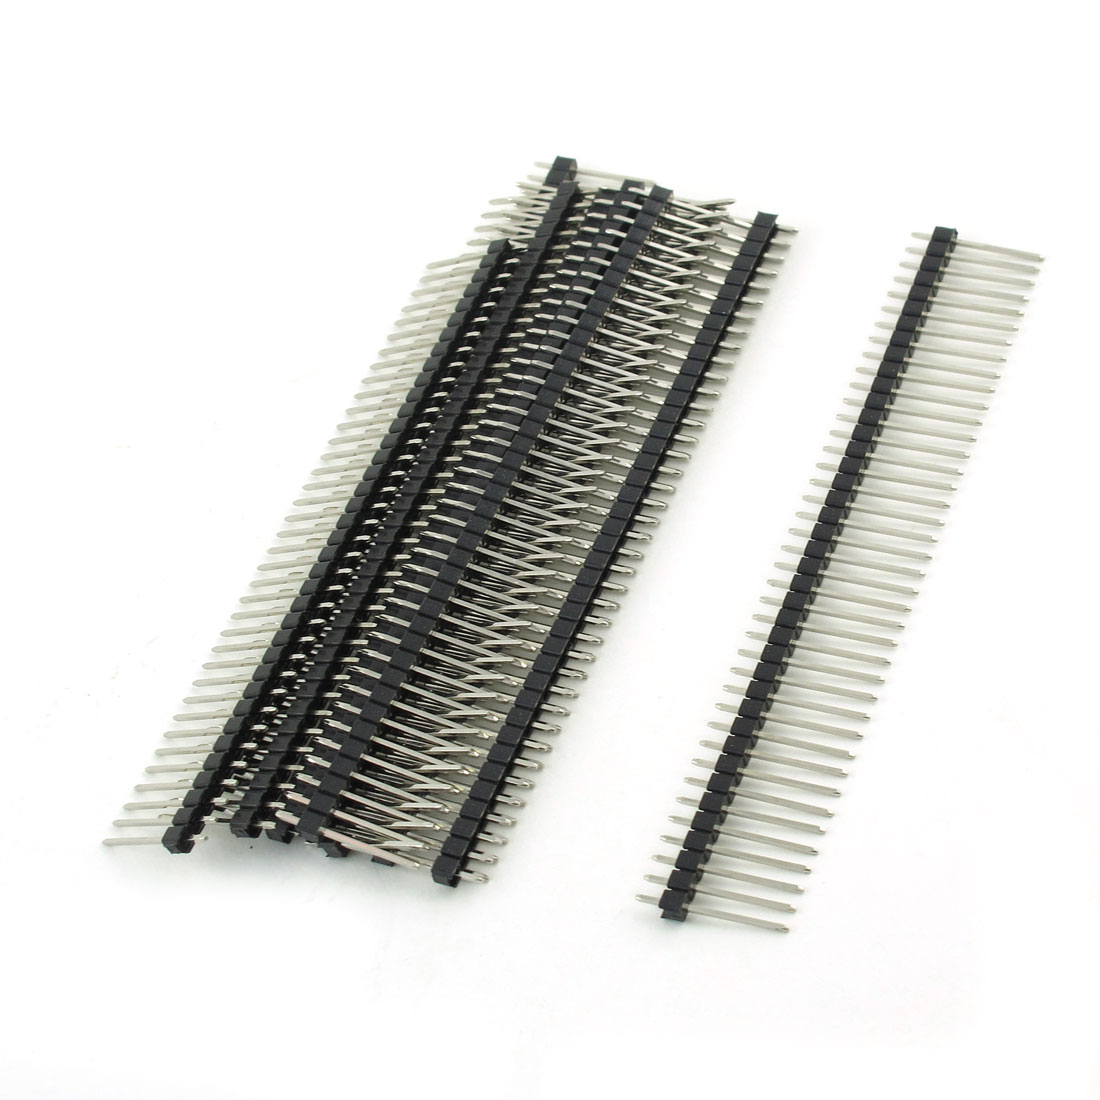 10 Pcs 2 x 40 Pin 2mm Pitch Single Row PCB Straight Pin Headers